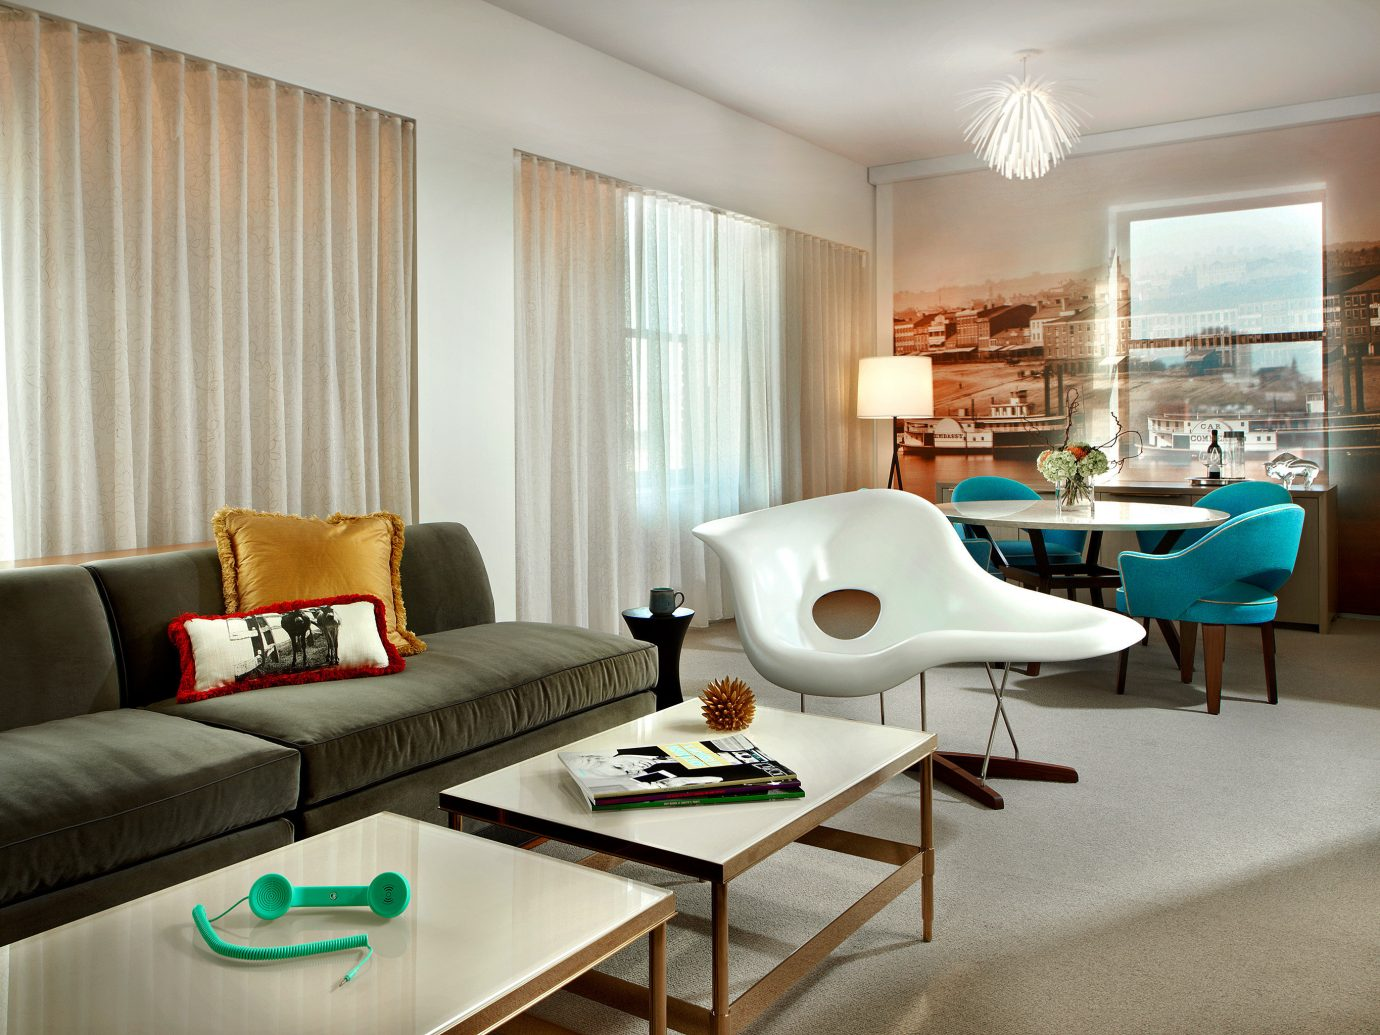 Boutique Boutique Hotels Fall Travel Food + Drink Living Lounge Modern Trip Ideas Weekend Getaways indoor floor room sofa table wall window property living room furniture ceiling interior design condominium Suite estate home real estate Design window covering apartment area